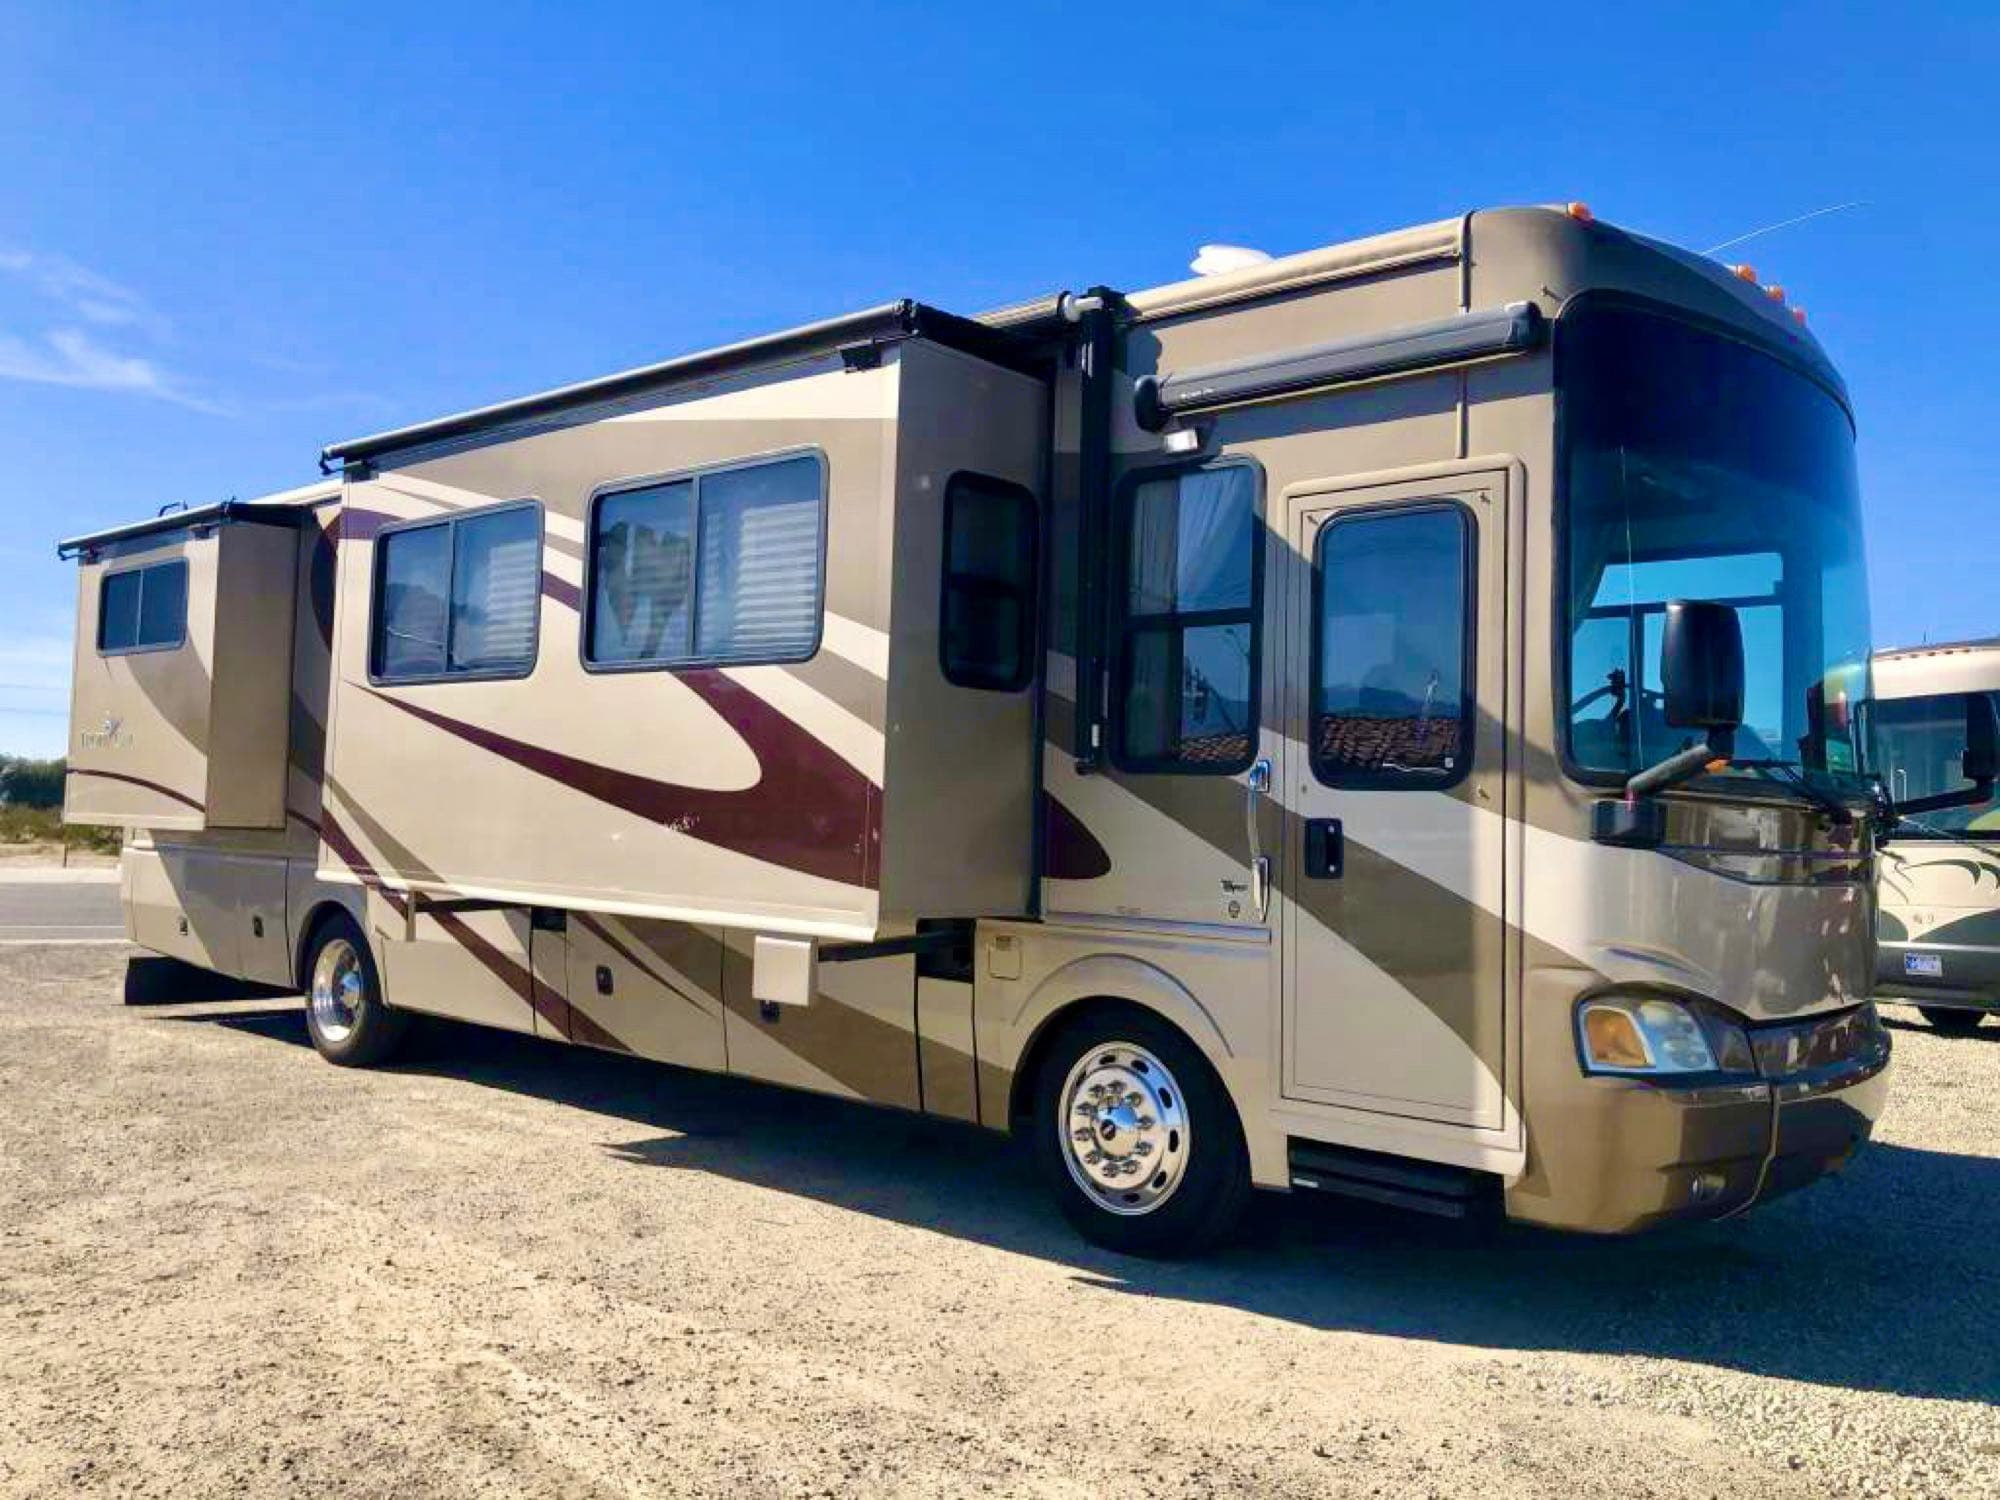 2008 National RV Tropical Class A Diesel Pusher. National Tropical 2008